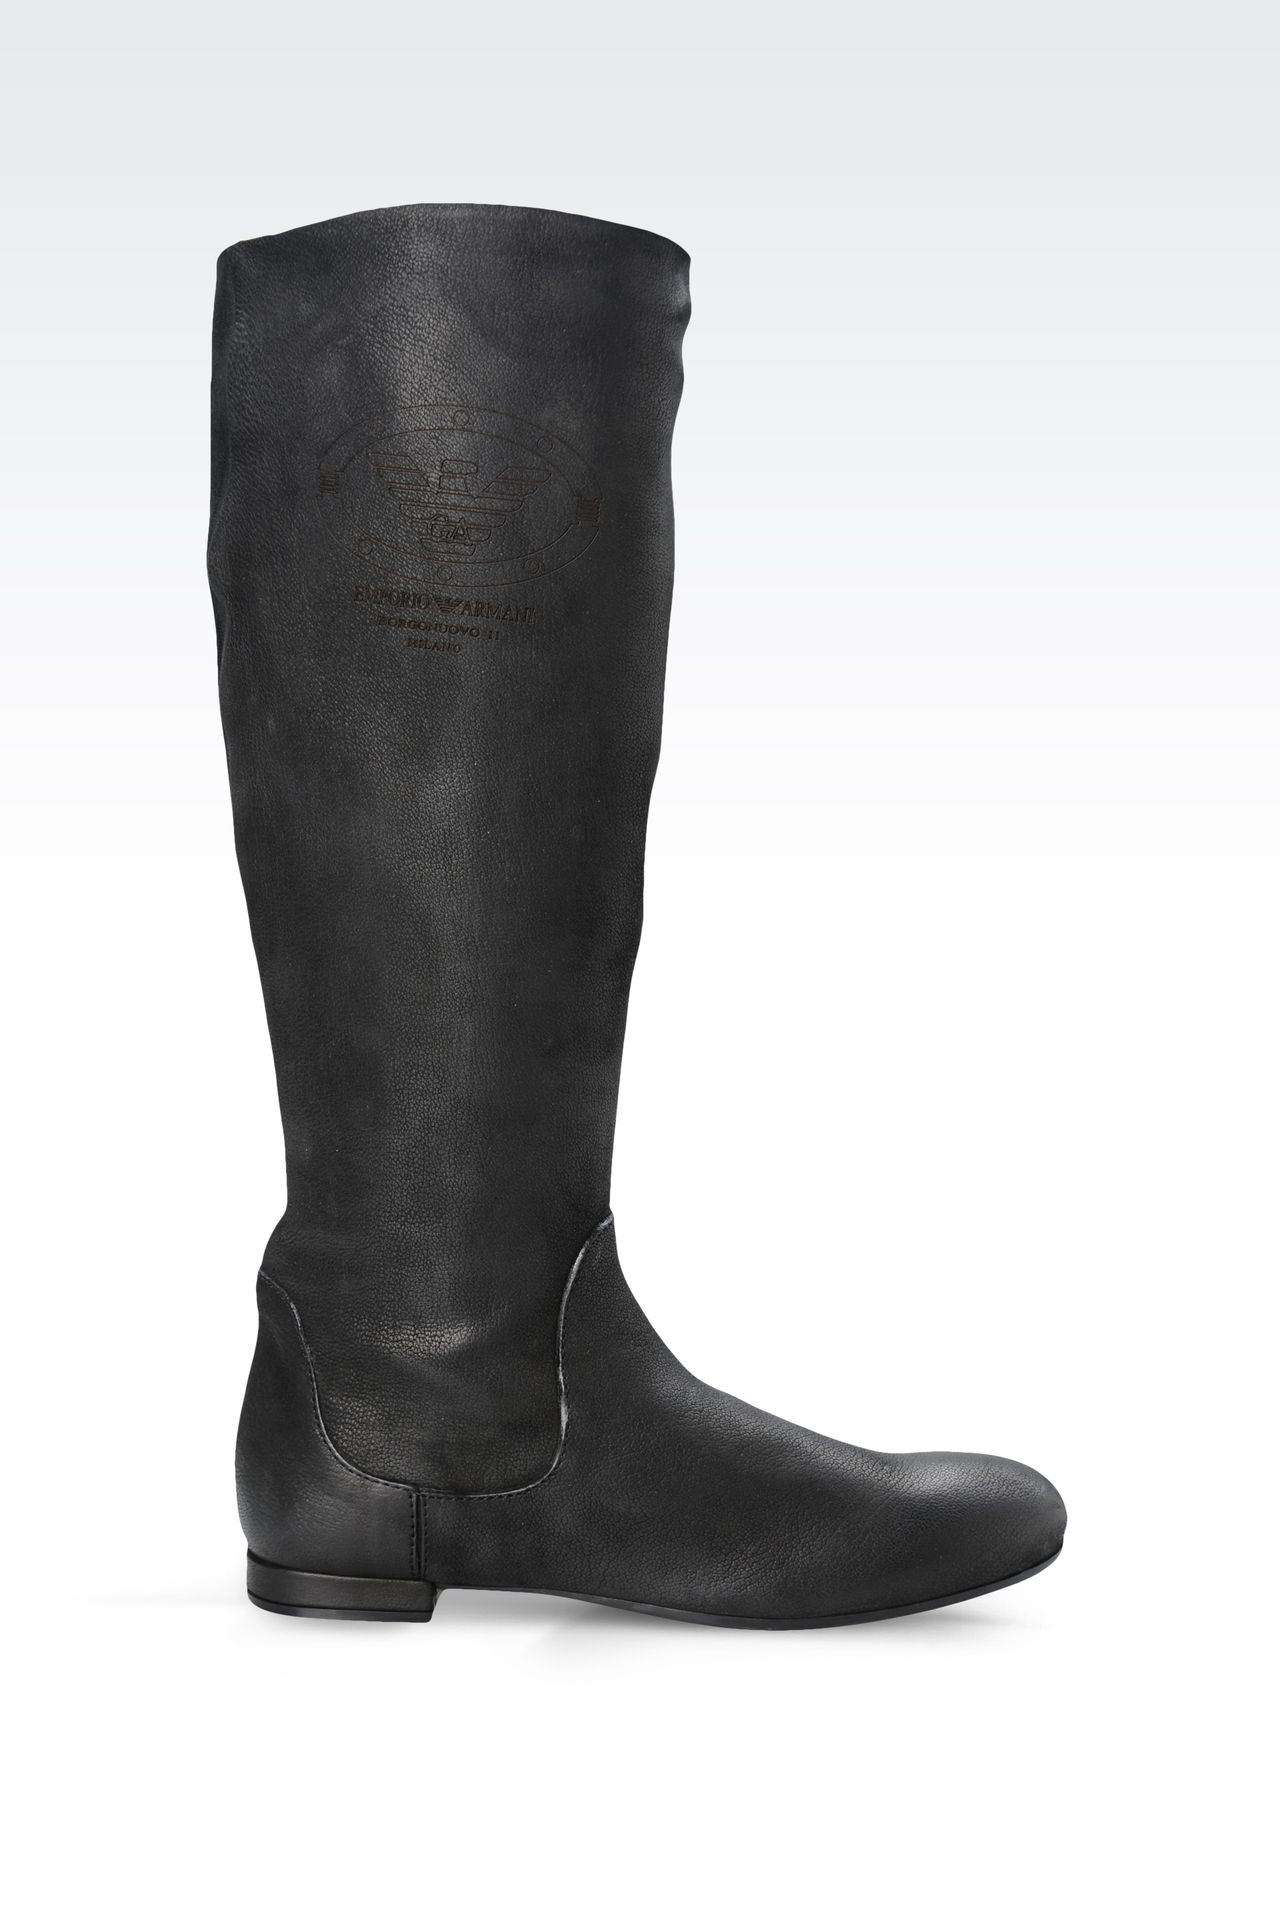 LEATHER BOOT WITH PRINTED LOGO: Ankle boots Women by Armani - 0